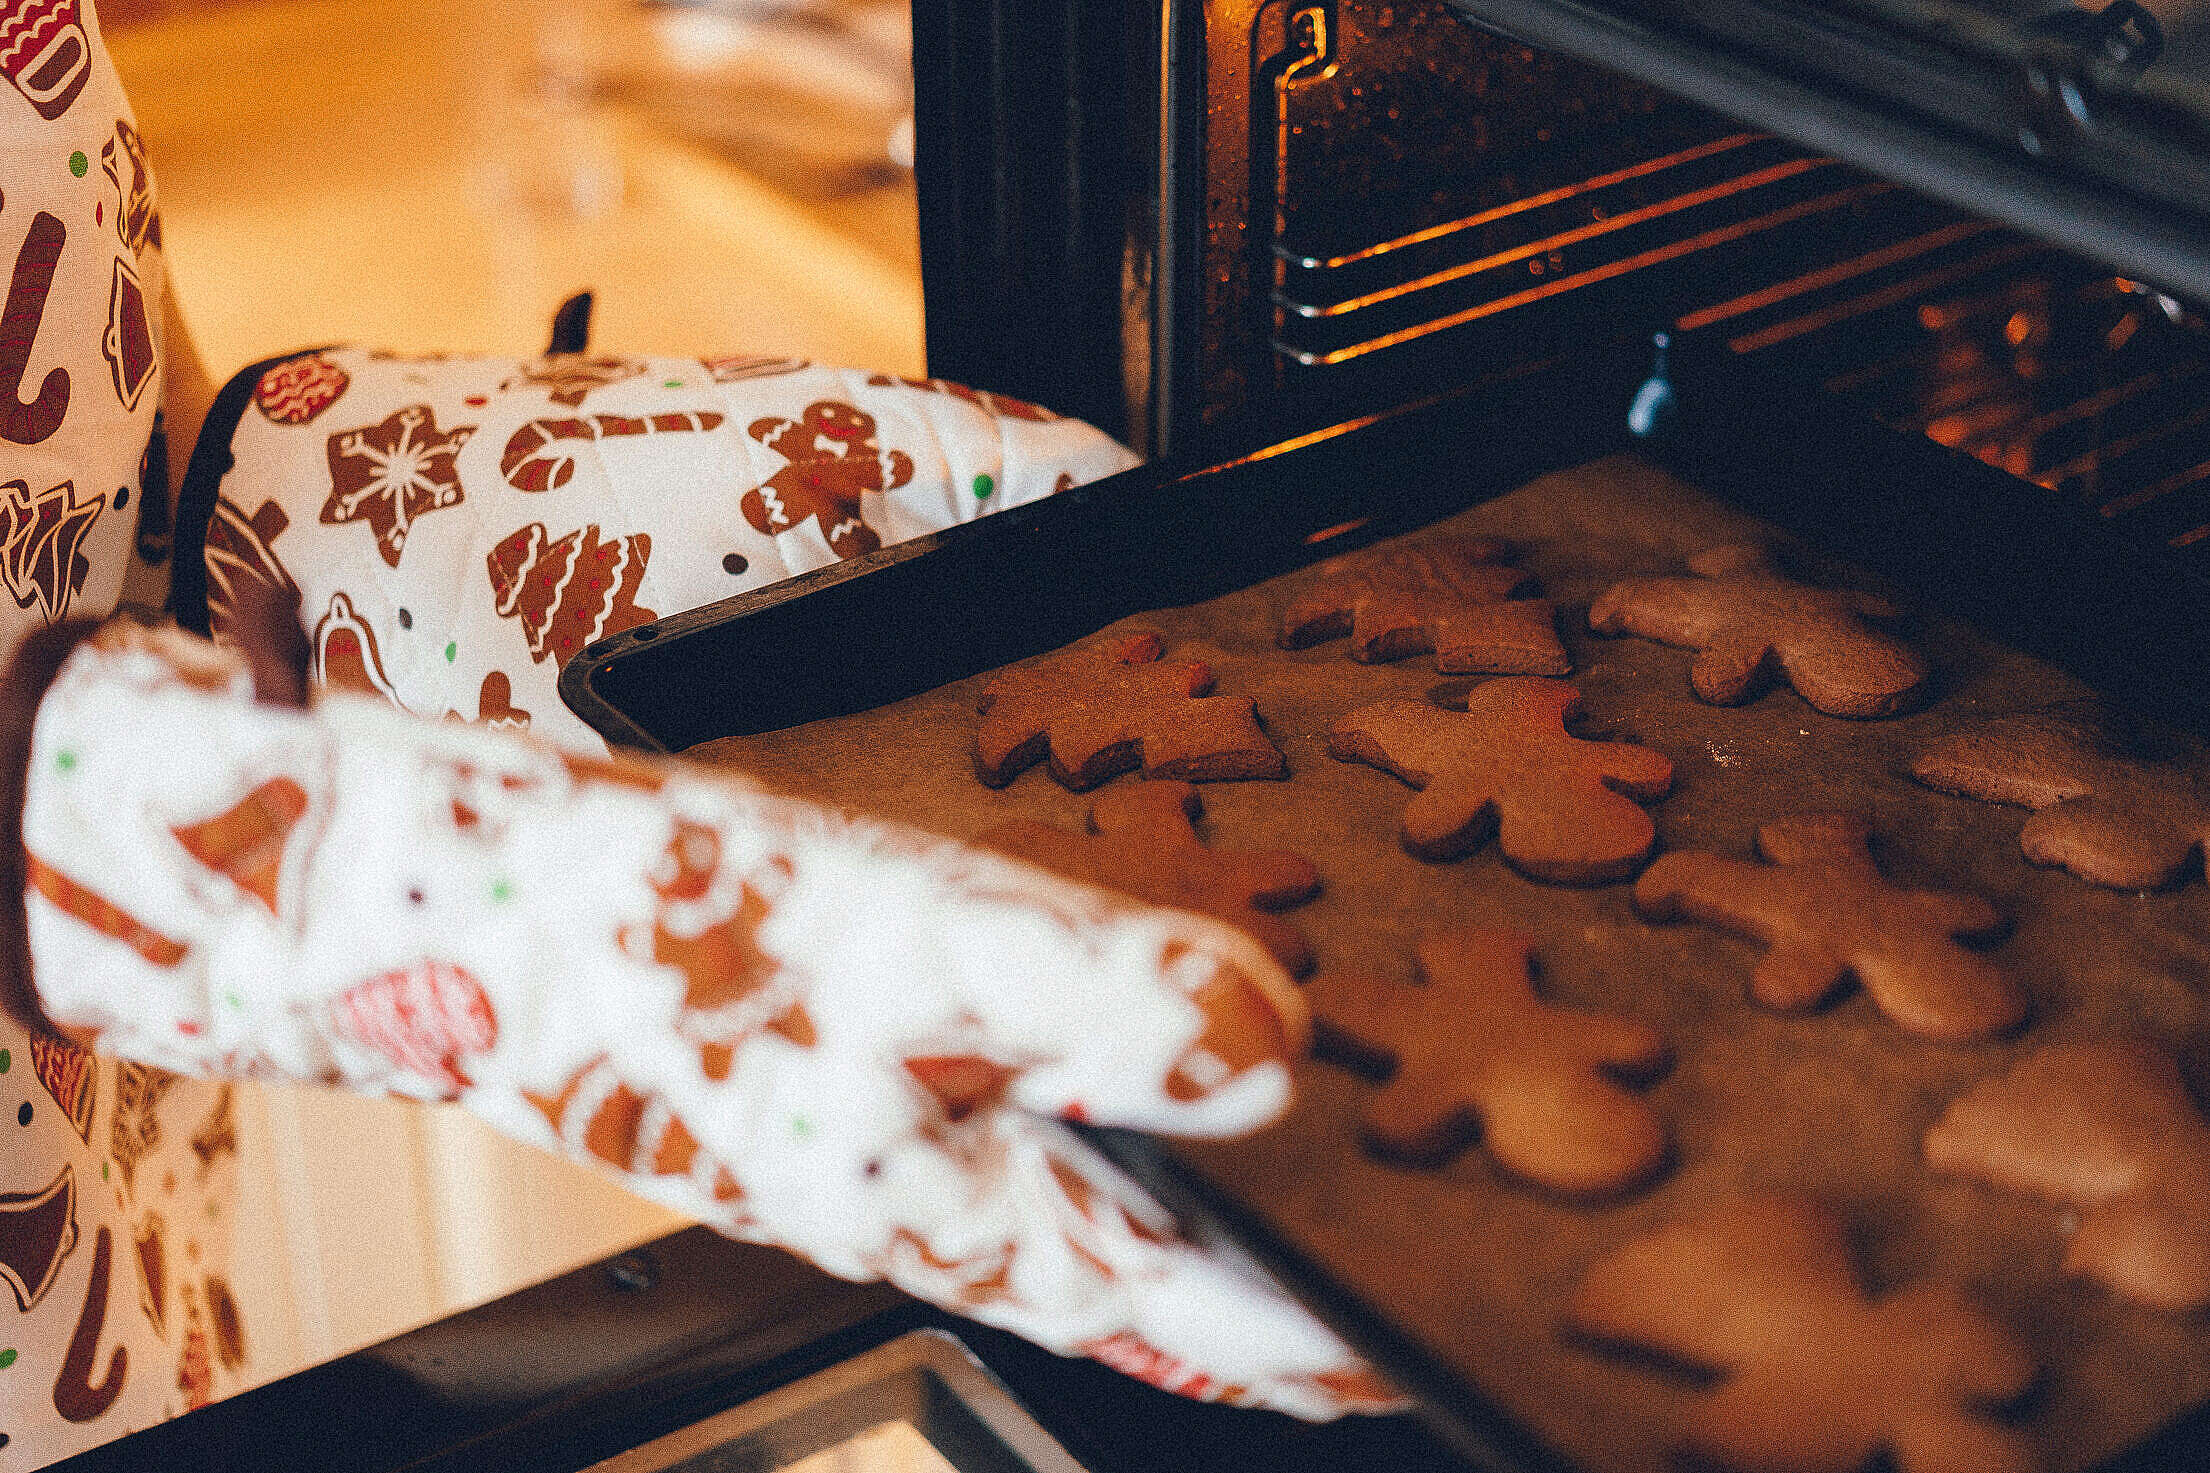 Woman Putting Christmas Cookies in The Oven Free Stock Photo